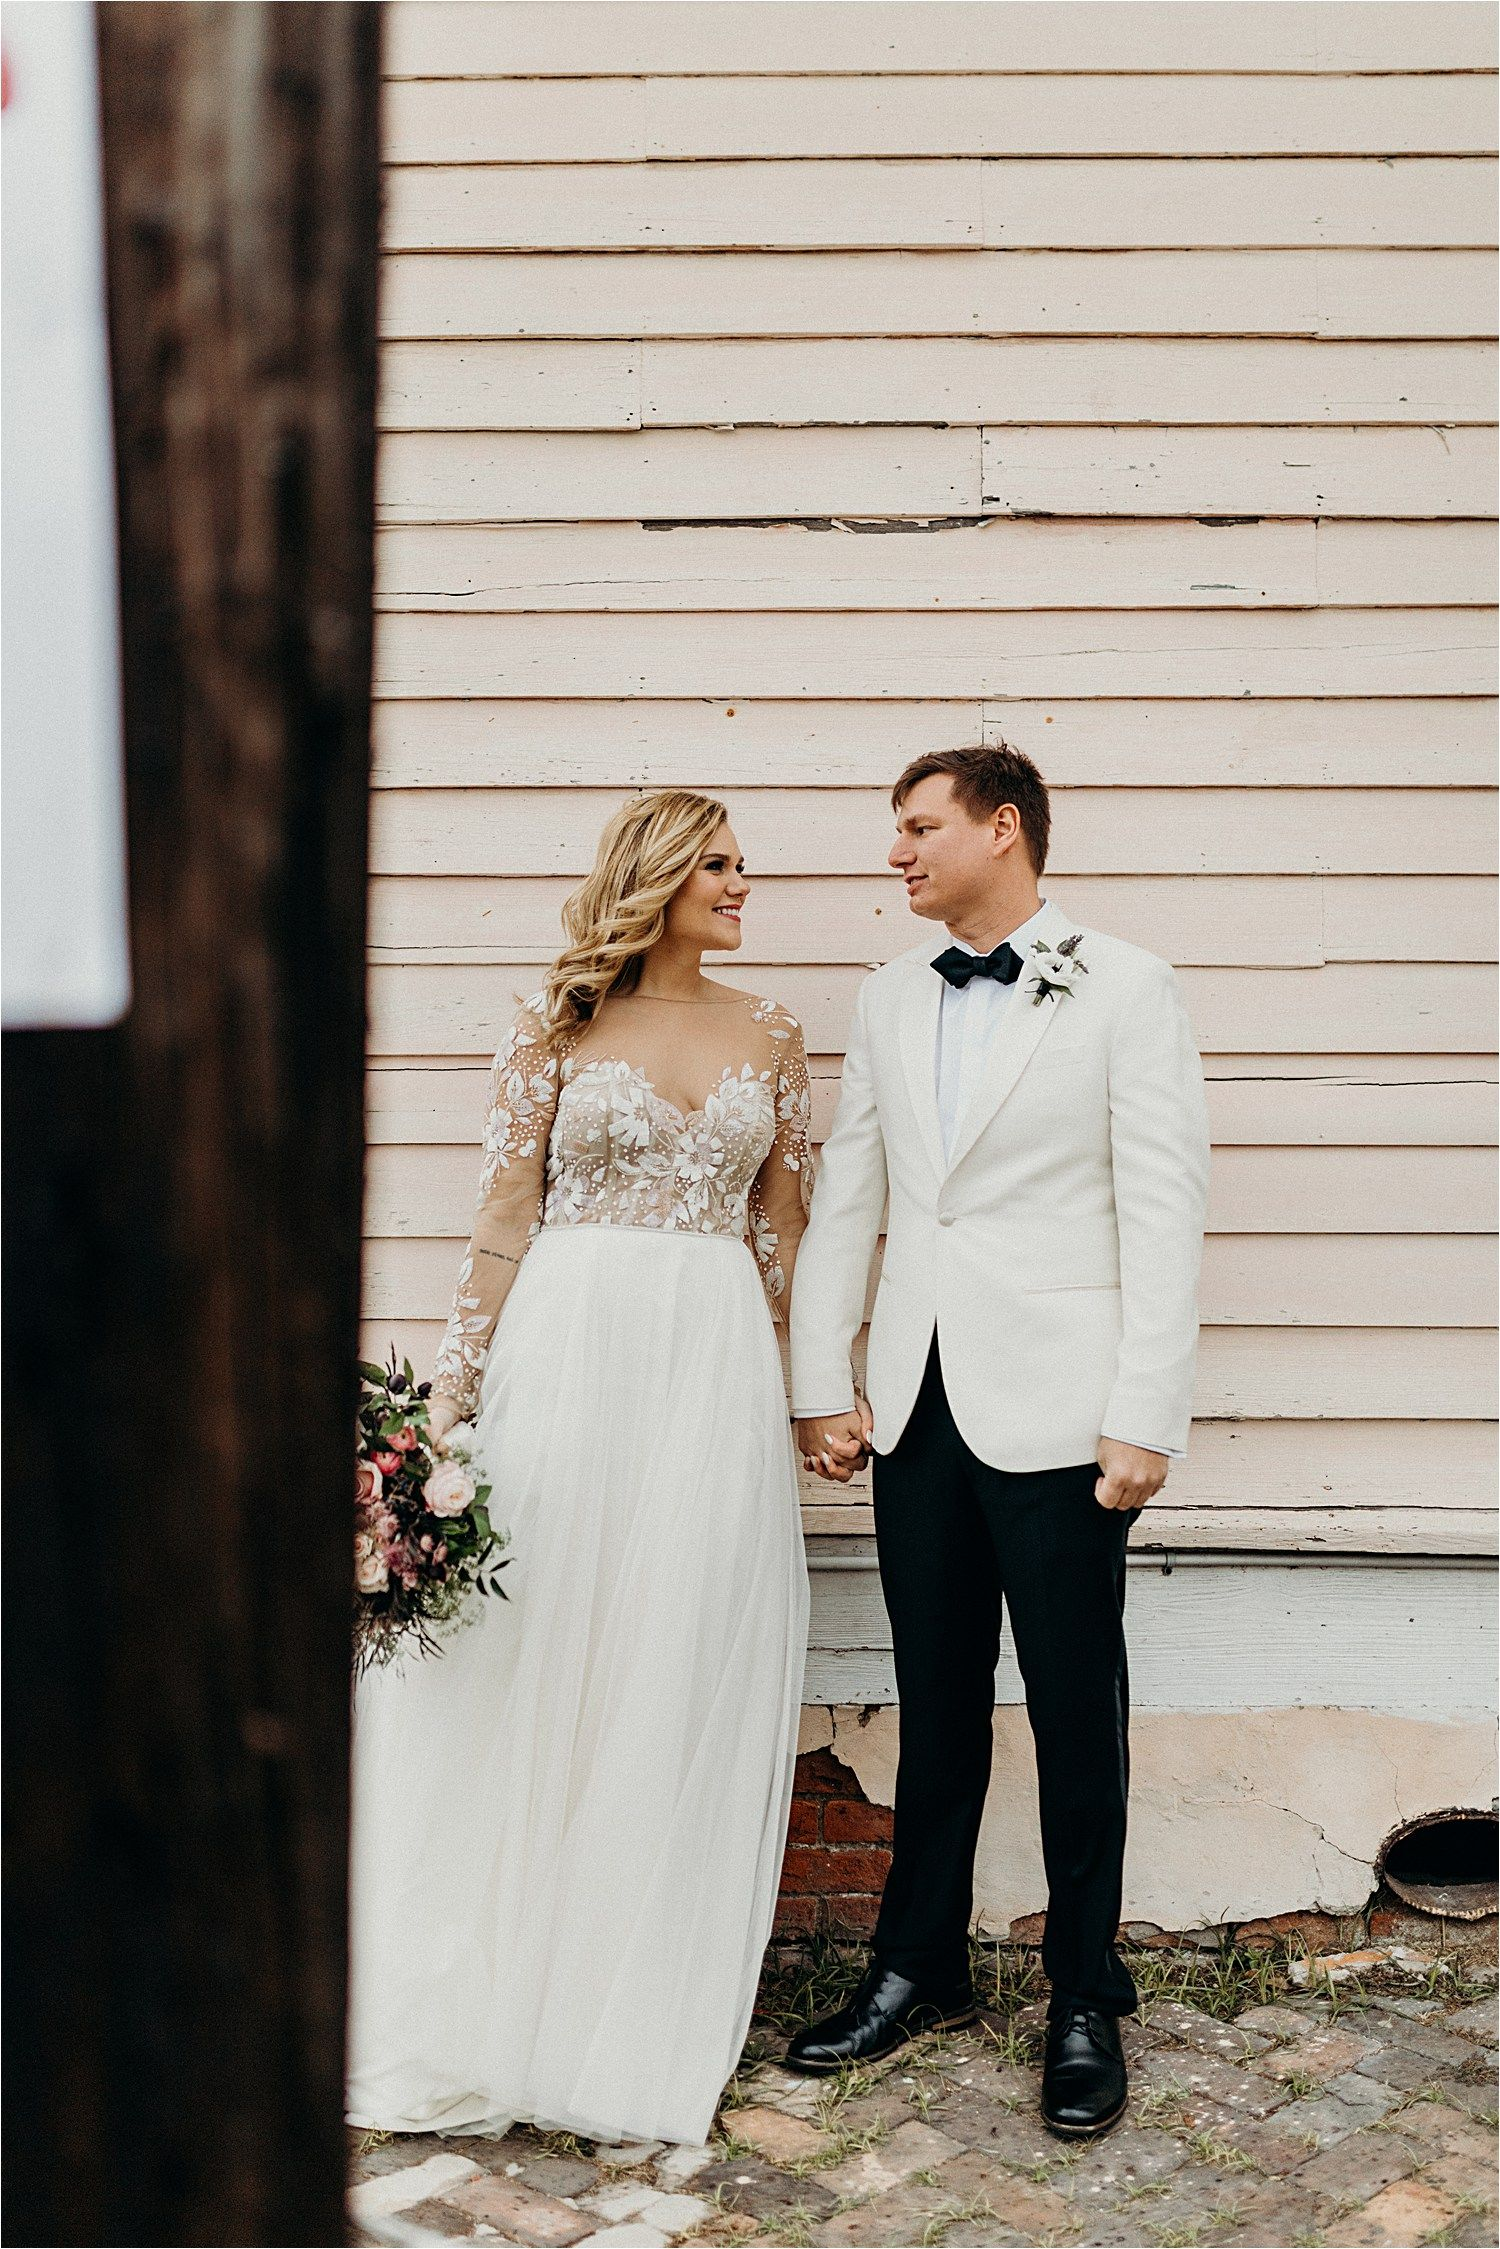 Eccentric New Years Eve Wedding In New Orleans W Sarah Marshall Louisiana Elopement And Wedding Photographer Bride Style Wedding New Orleans Wedding,Wedding Dress Netting Fabric